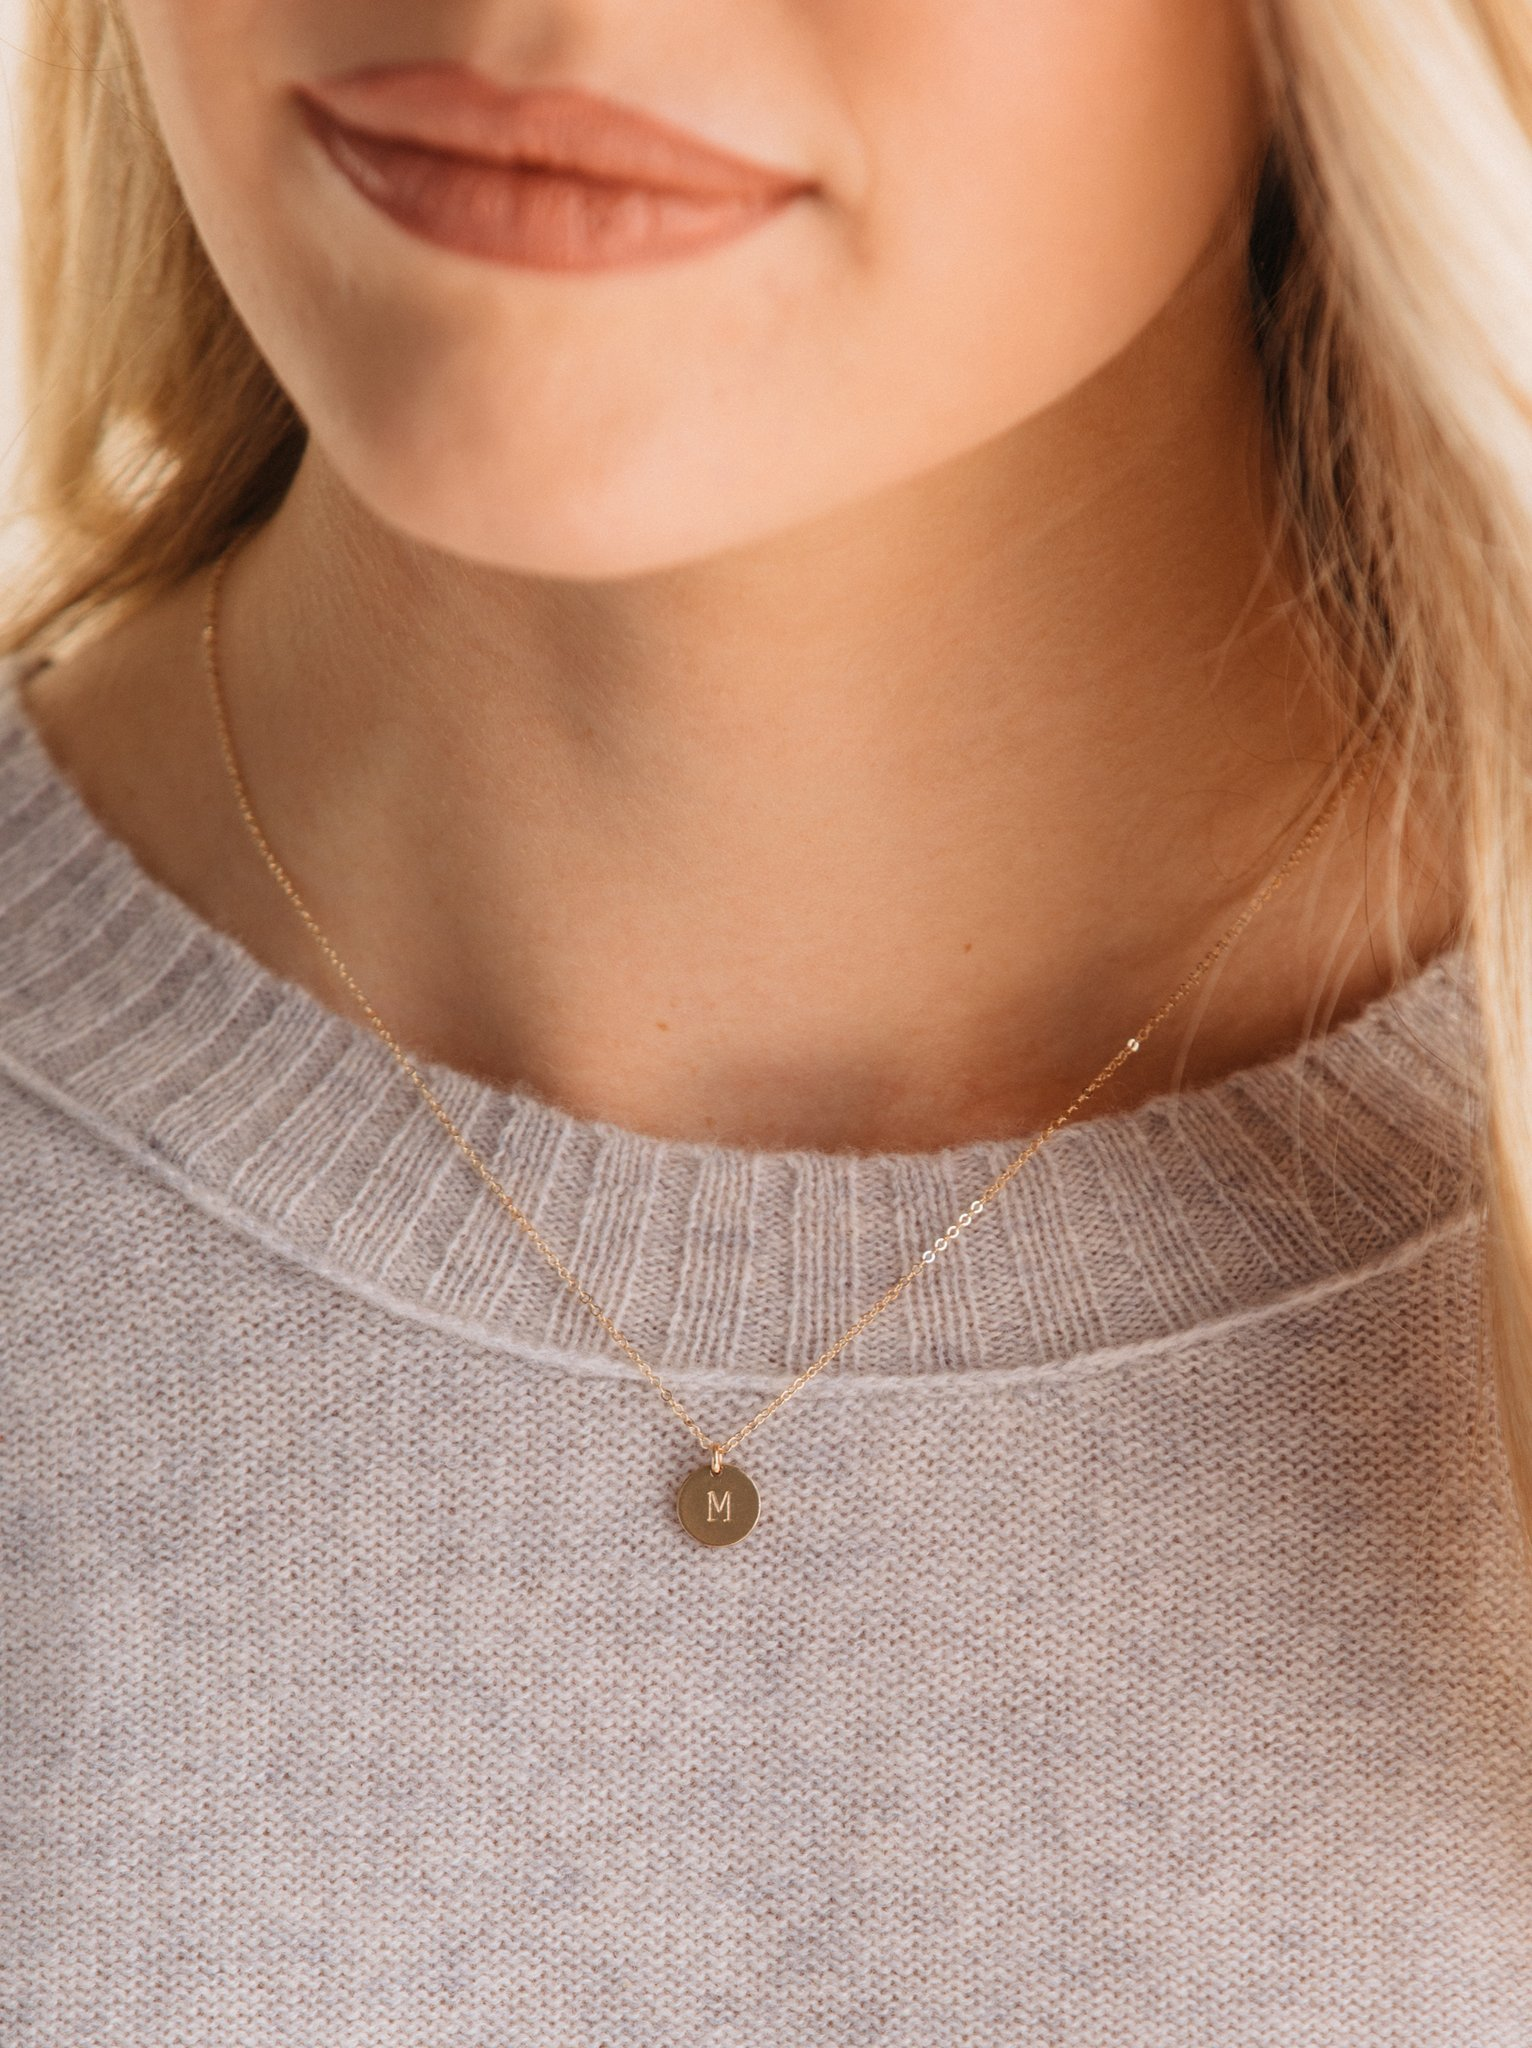 "Mini Initial Necklace - ABLE | Ethically made by women in Nashville | $40 with discount code ""KEIRA15"" for 15% offDelicate, simple, classic. You can even add multiple letters for each kid's initial!"